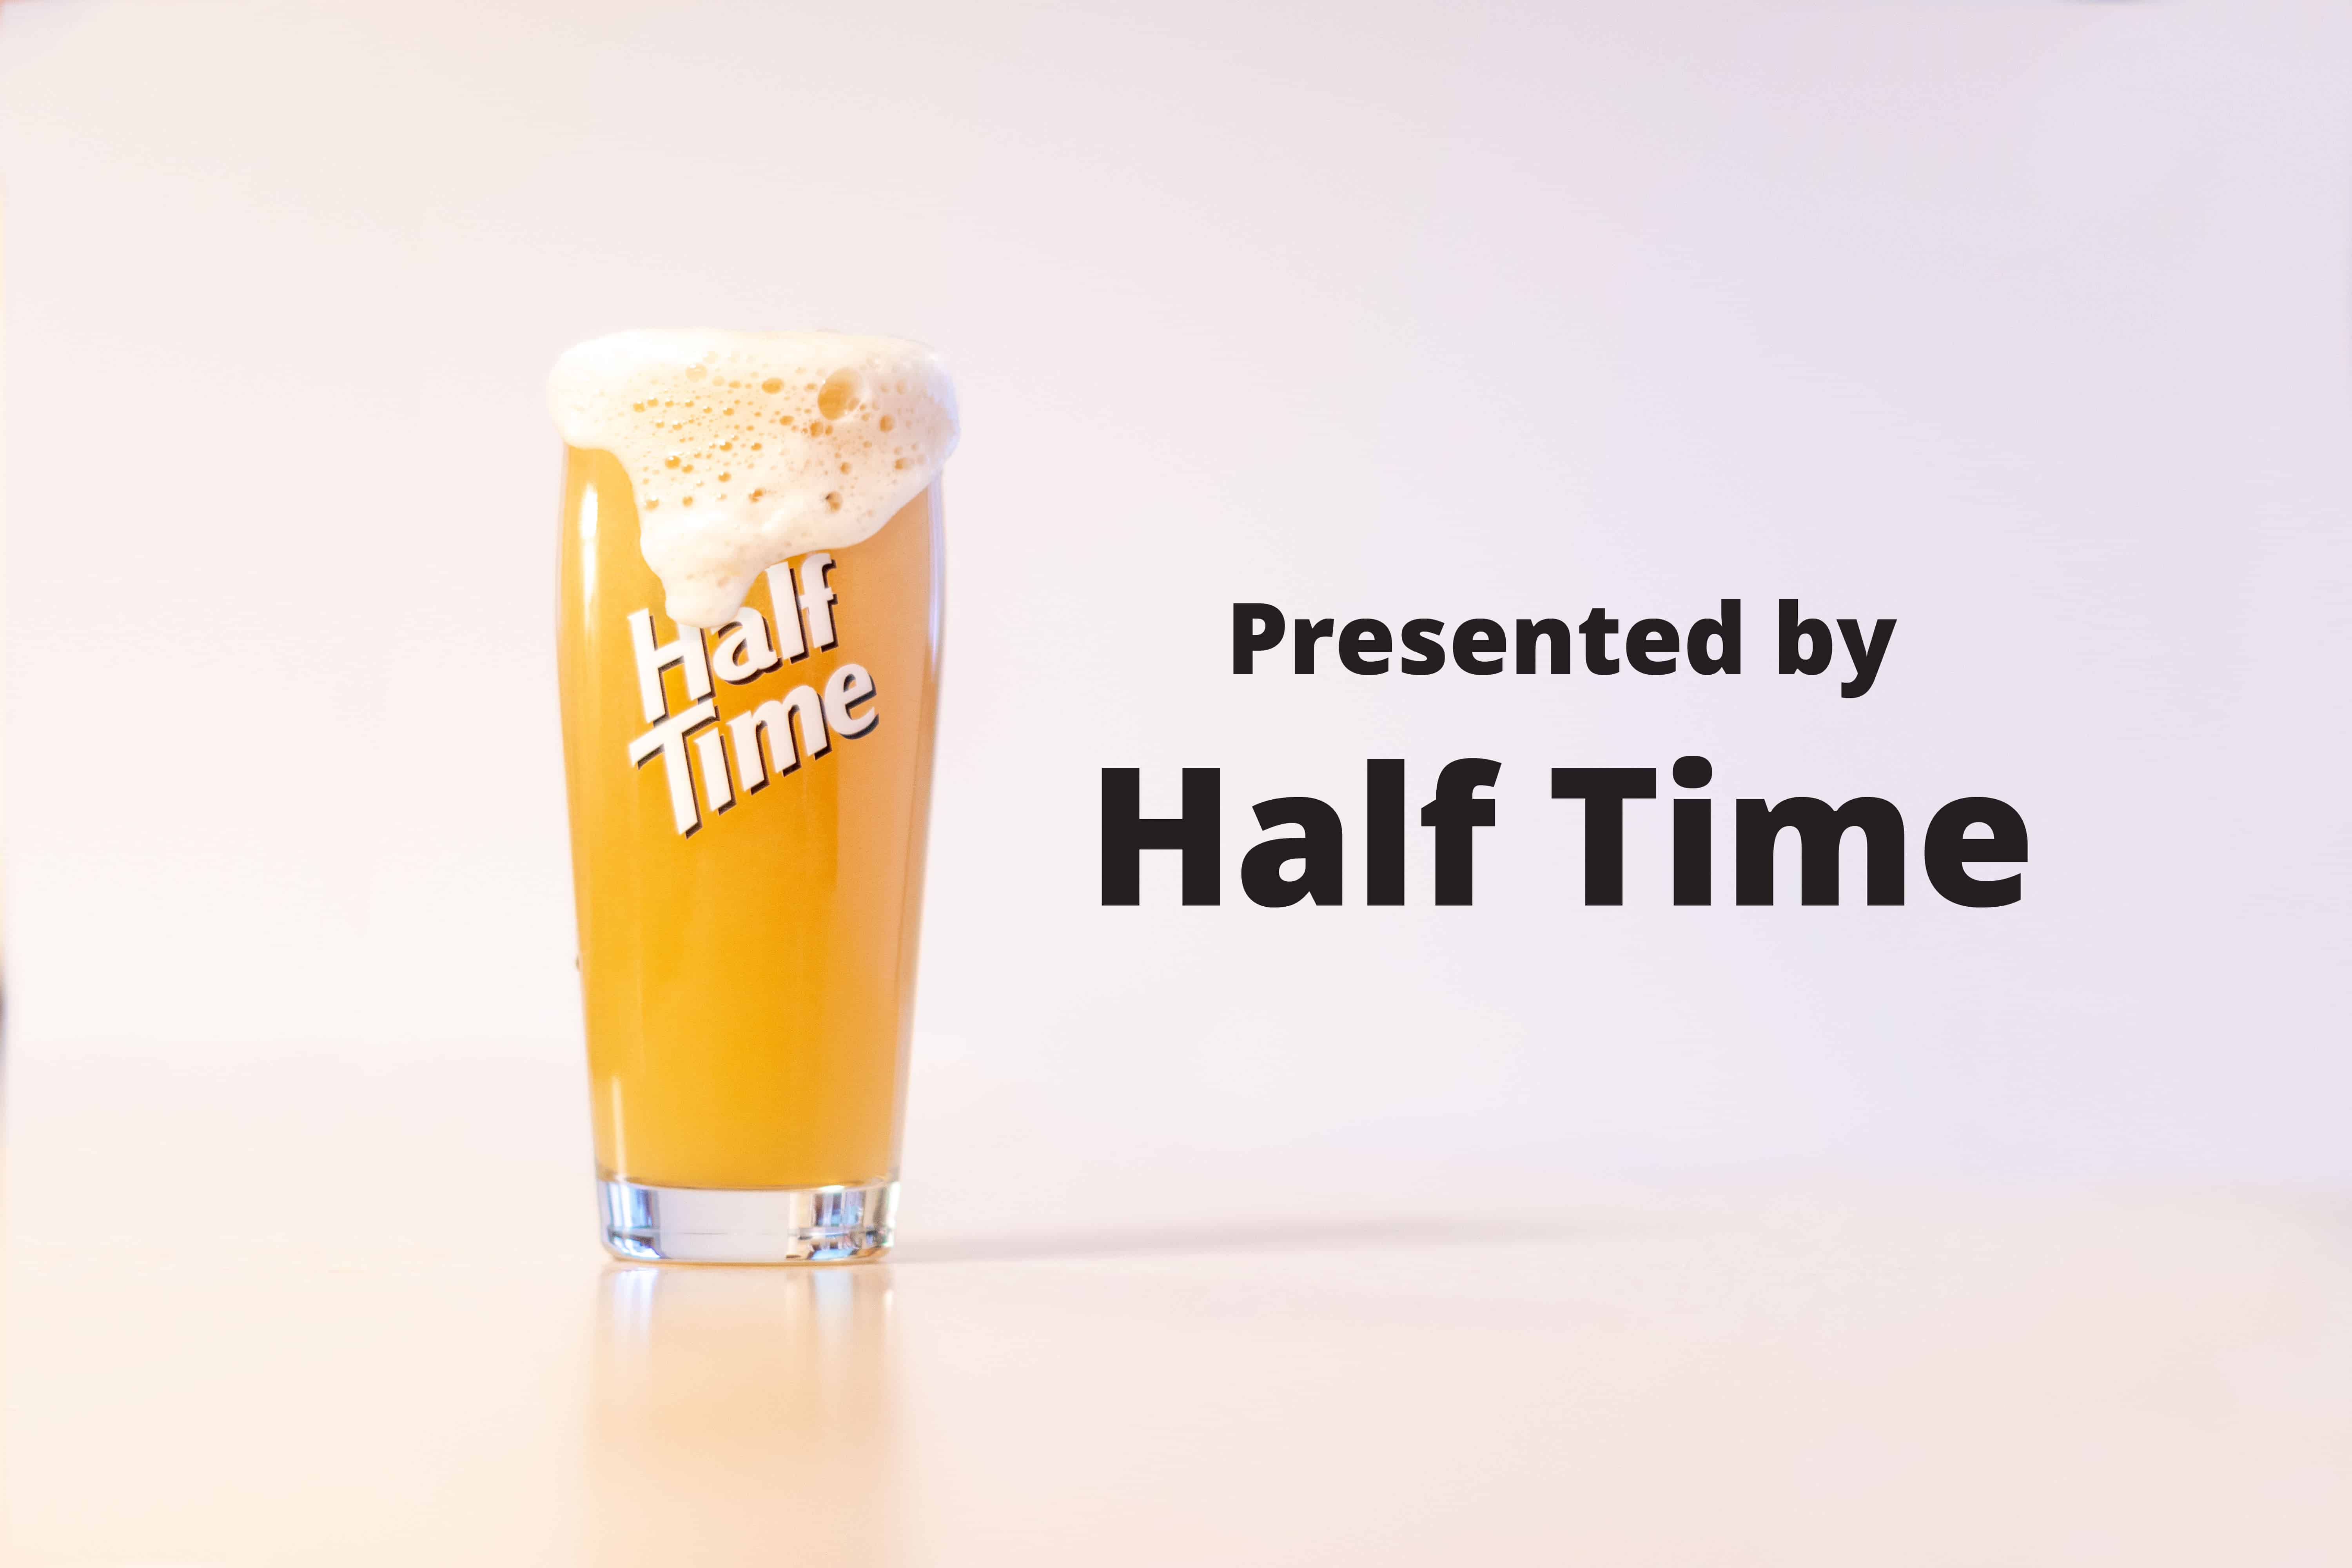 pRESENTED BY HALF TIME